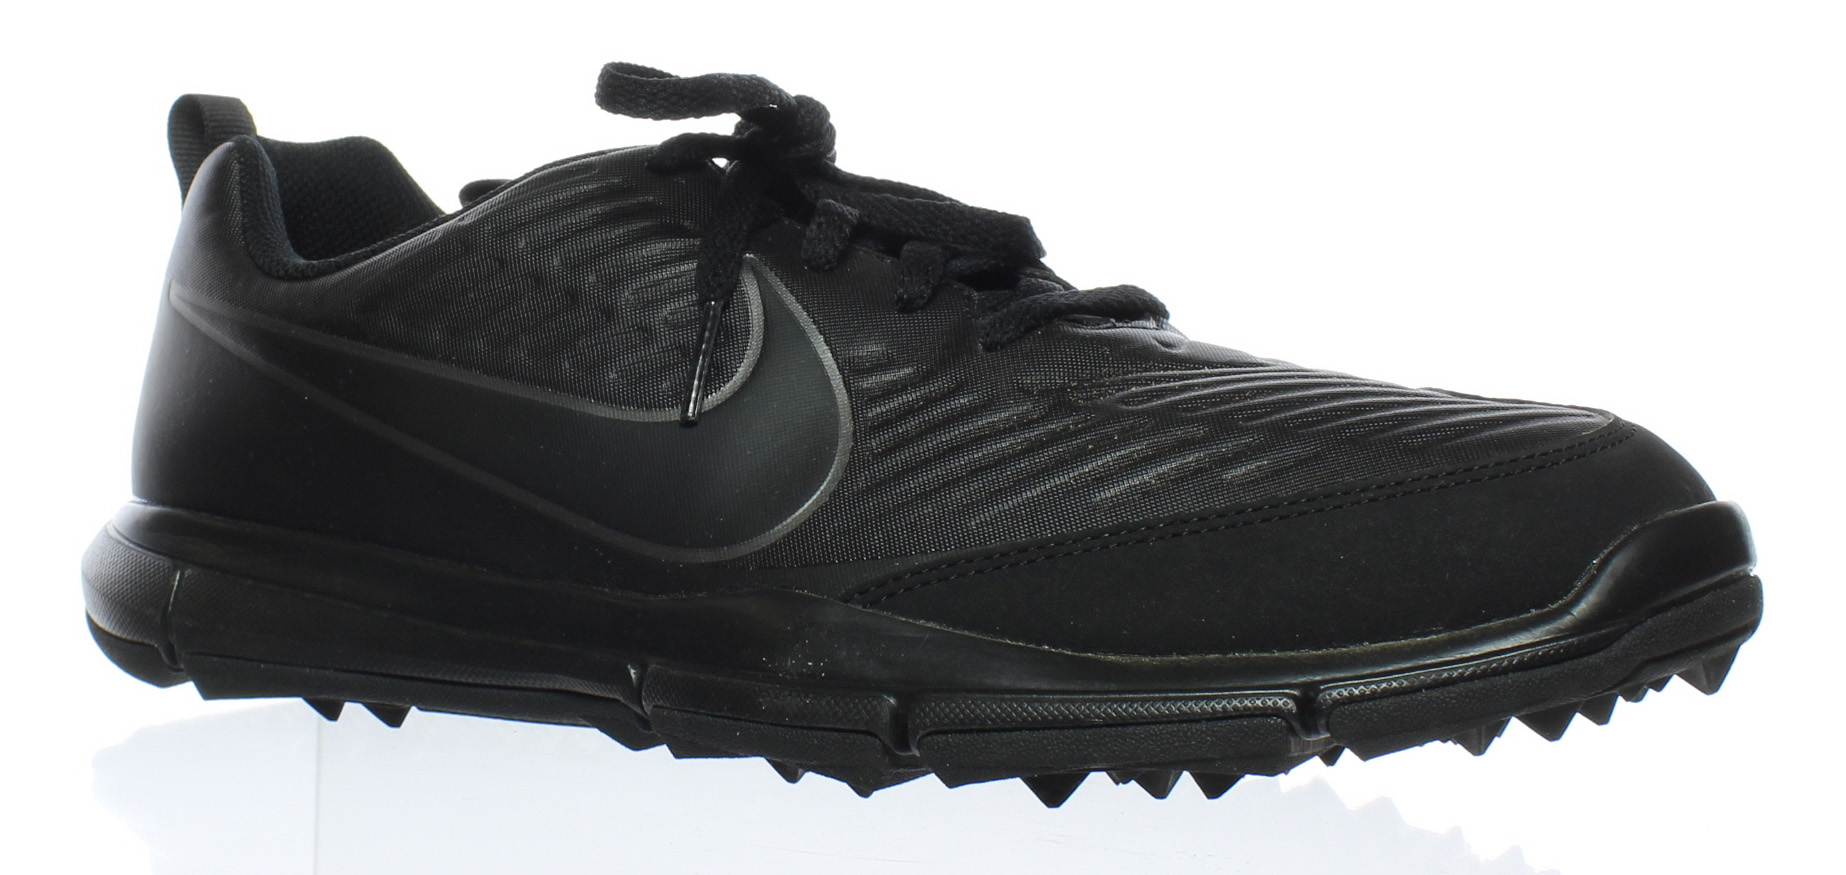 huge selection of 95384 4fc49 Nike Mens Mens Mens Black Running Shoes Size 9.5 (13148) abf21a